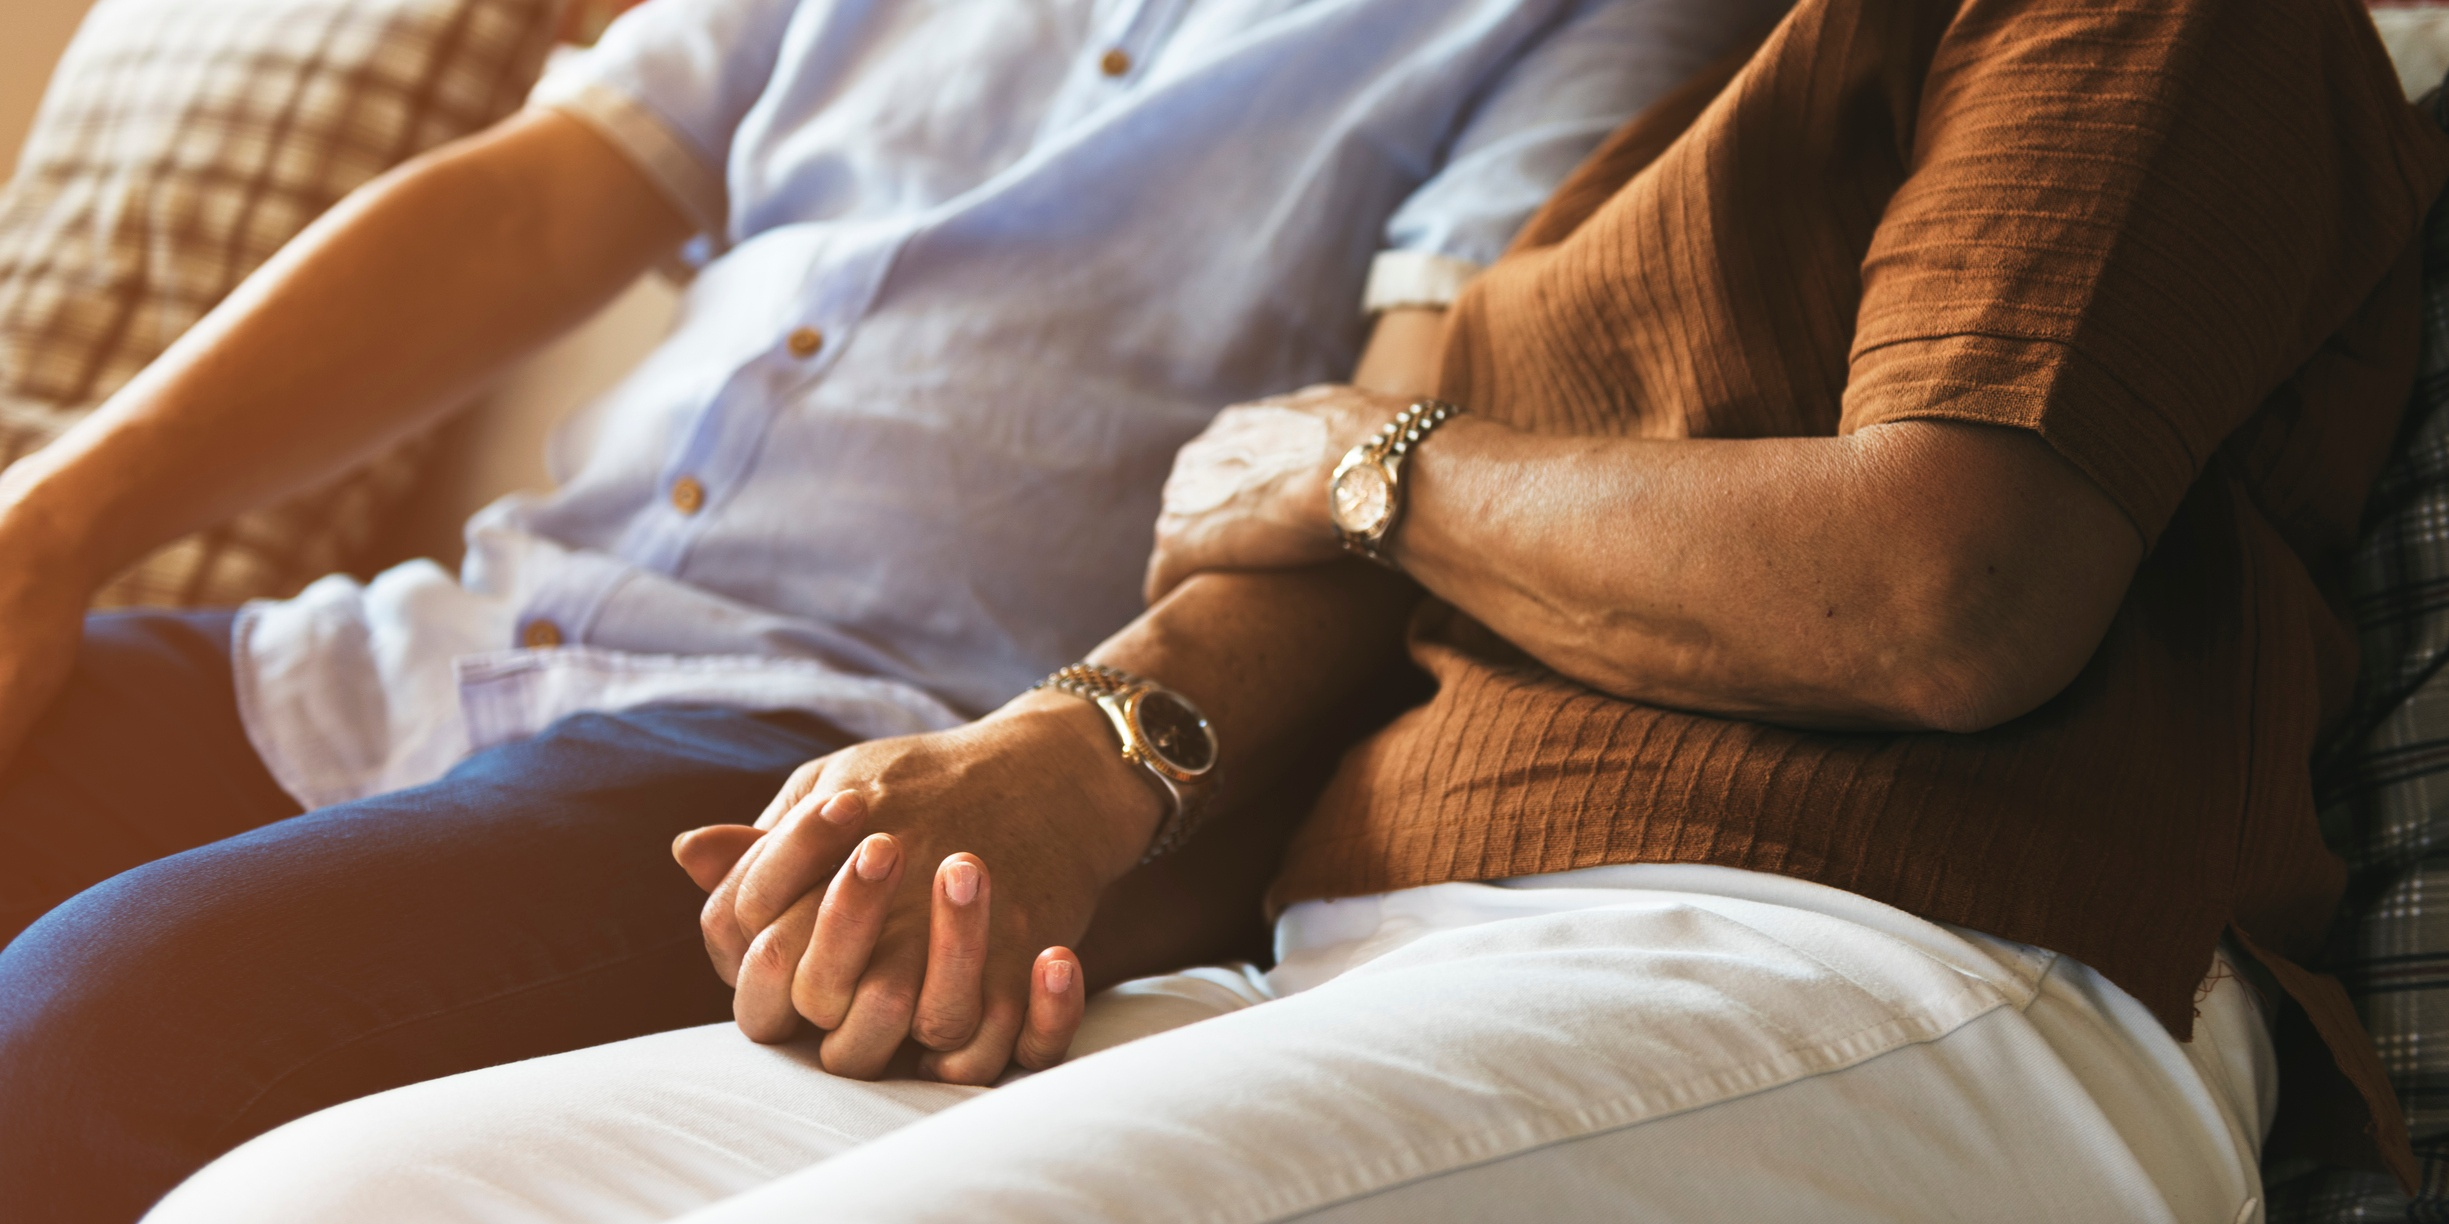 Signs of Dementia: Causes of Dementia, Signs and SYMPTOMS to Watch For, and More